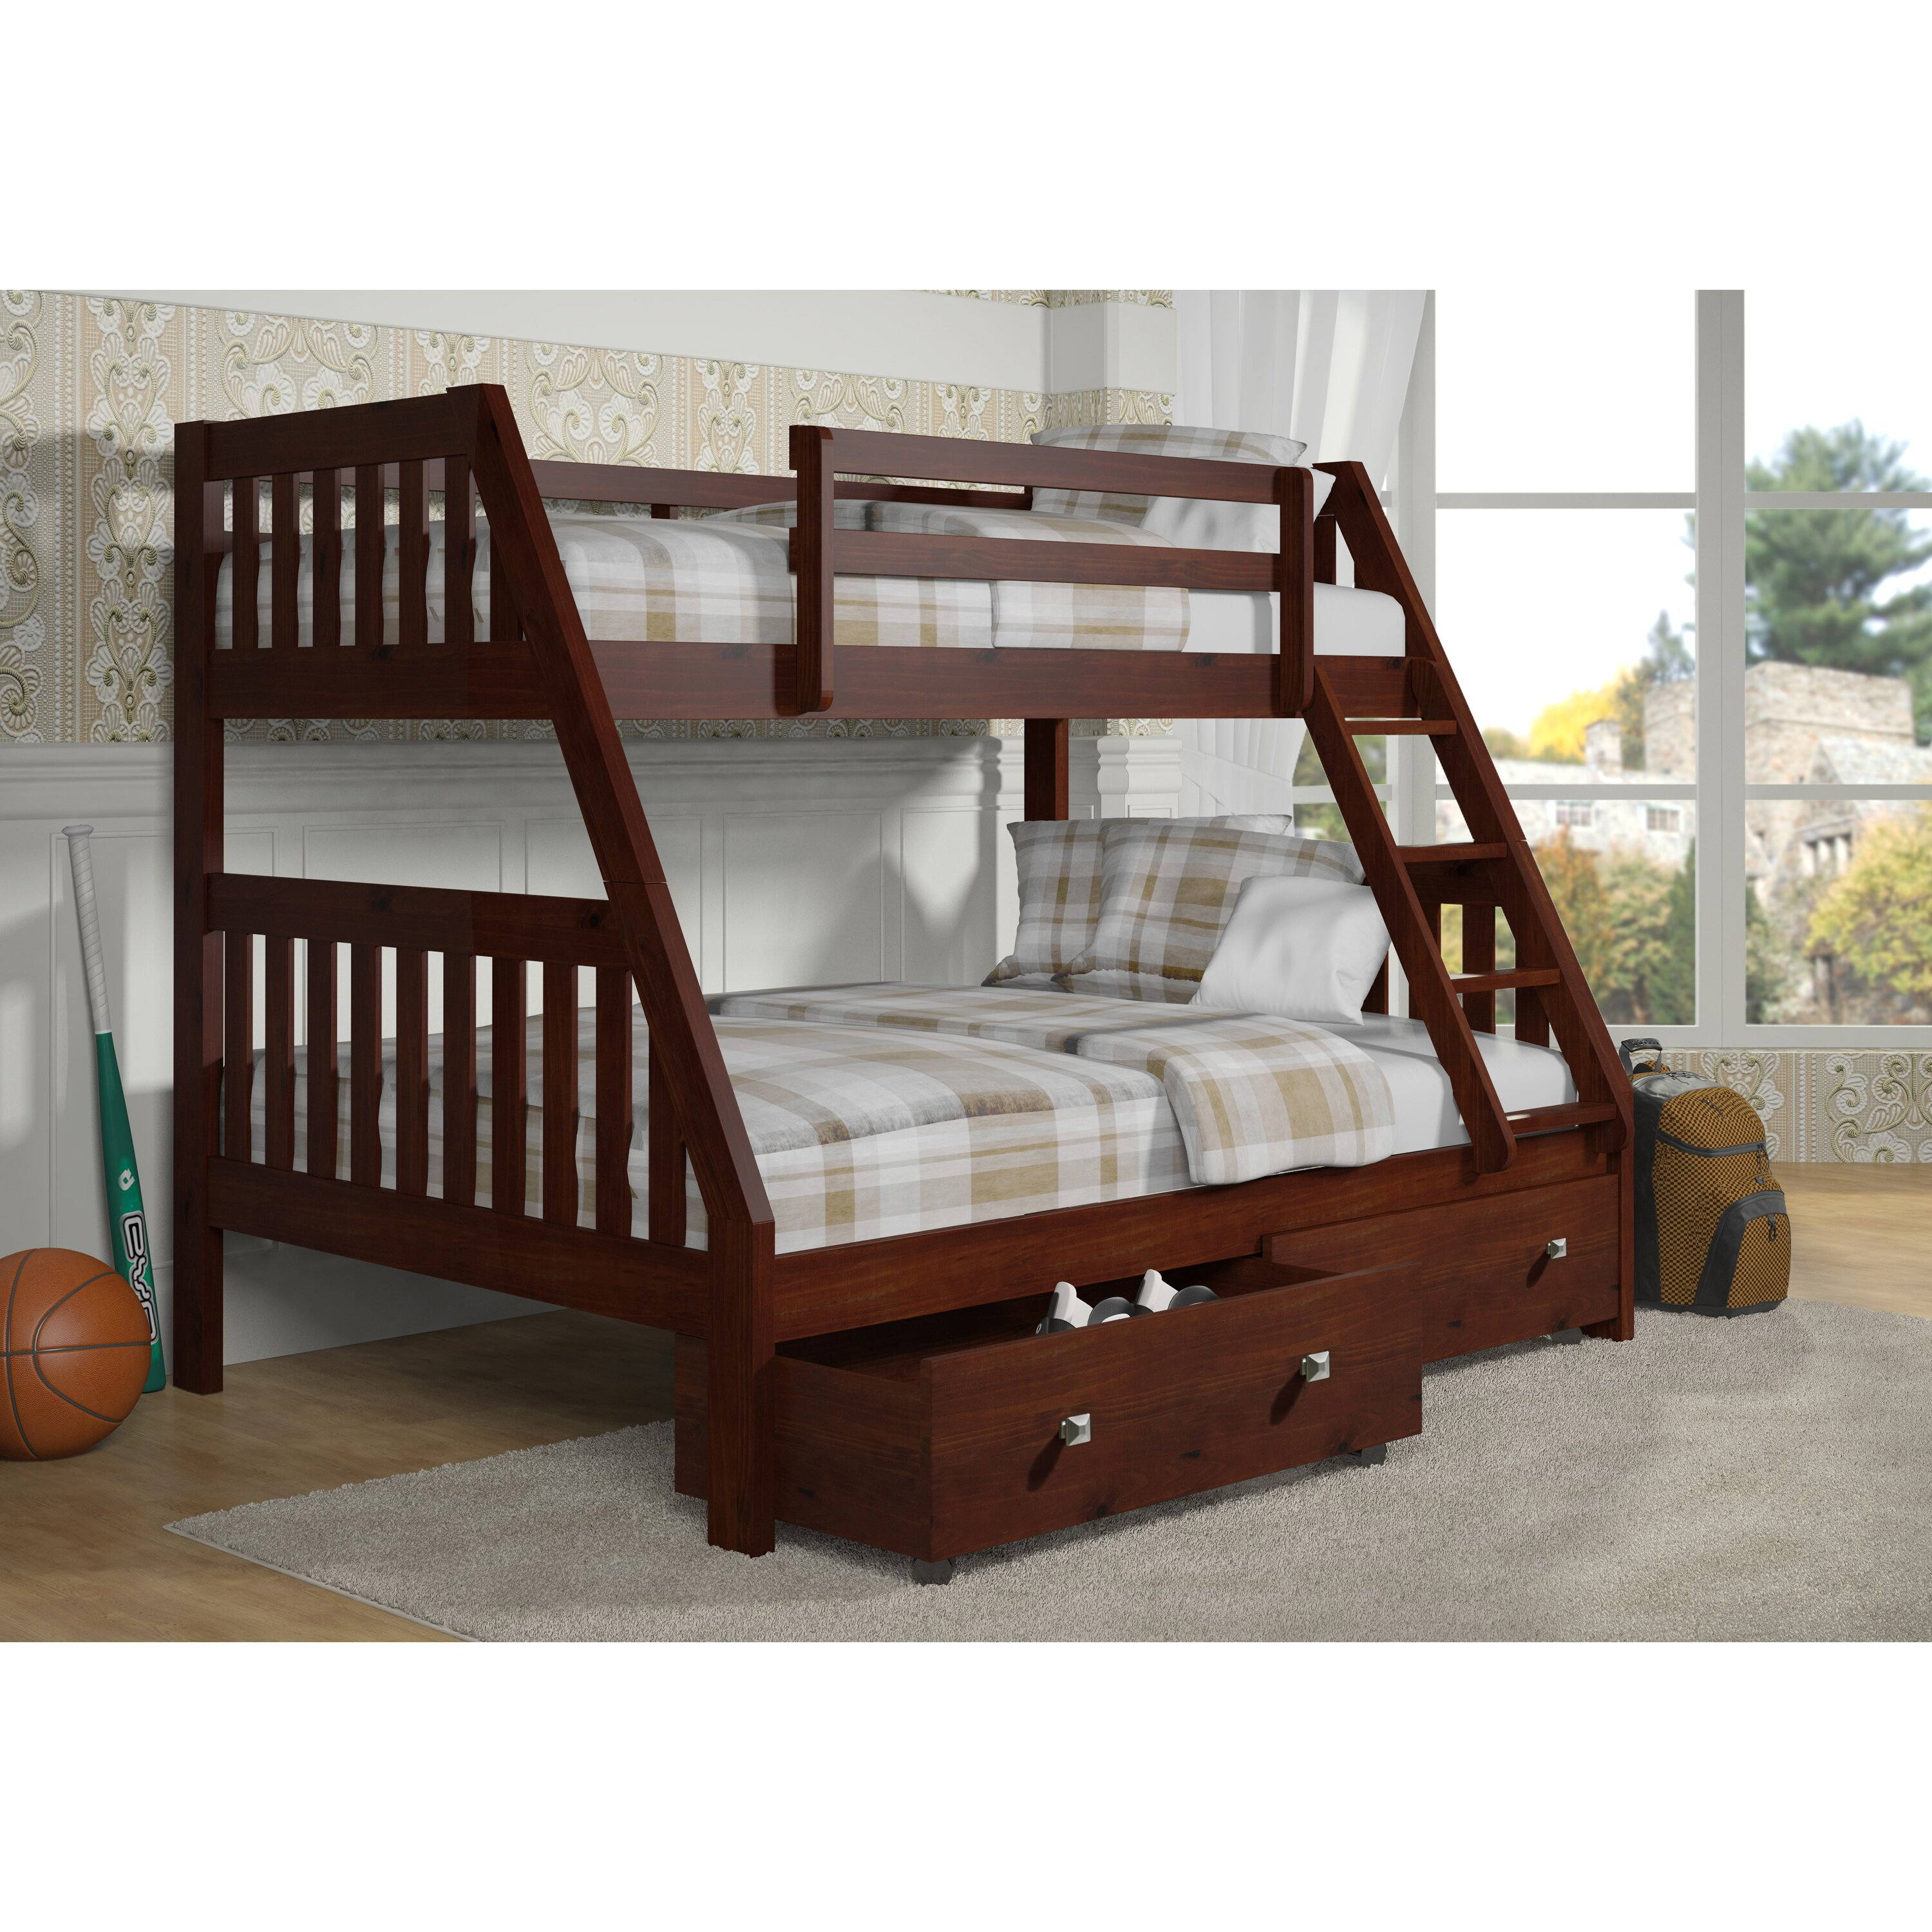 Donco Kids Twin Over Full Bunk Bed With Dual Under Bed